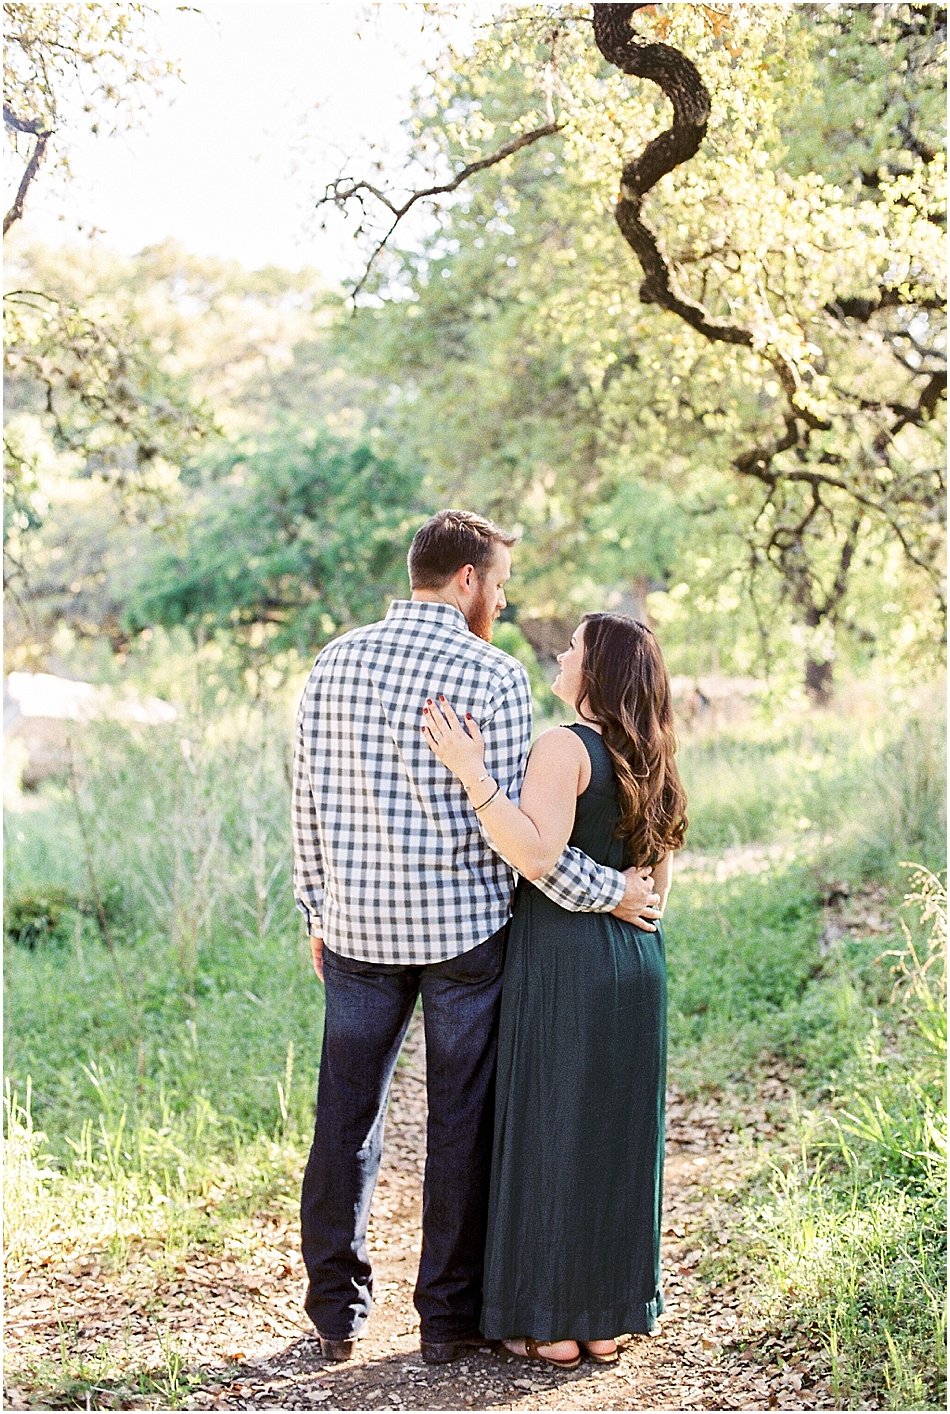 Brooke + Nick | Fine Art Creek Side Engagement | Film | Emilie Anne Photography-9.jpg